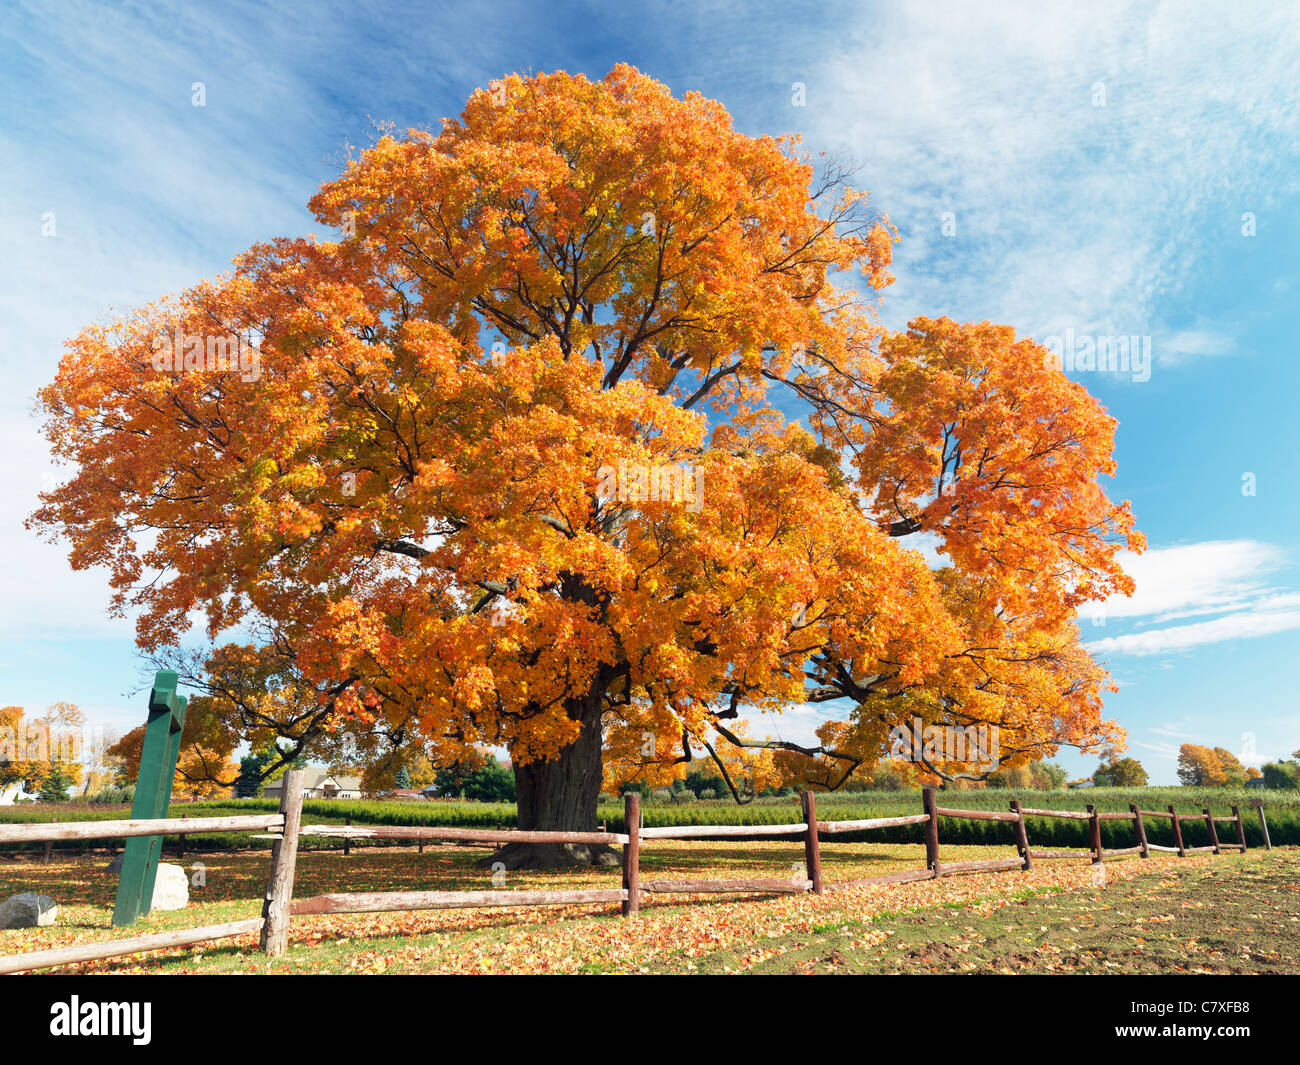 Canada,Ontario,Fonthill,the Comfort Maple, one of the oldest trees in Canada aged over 450 years Stock Photo